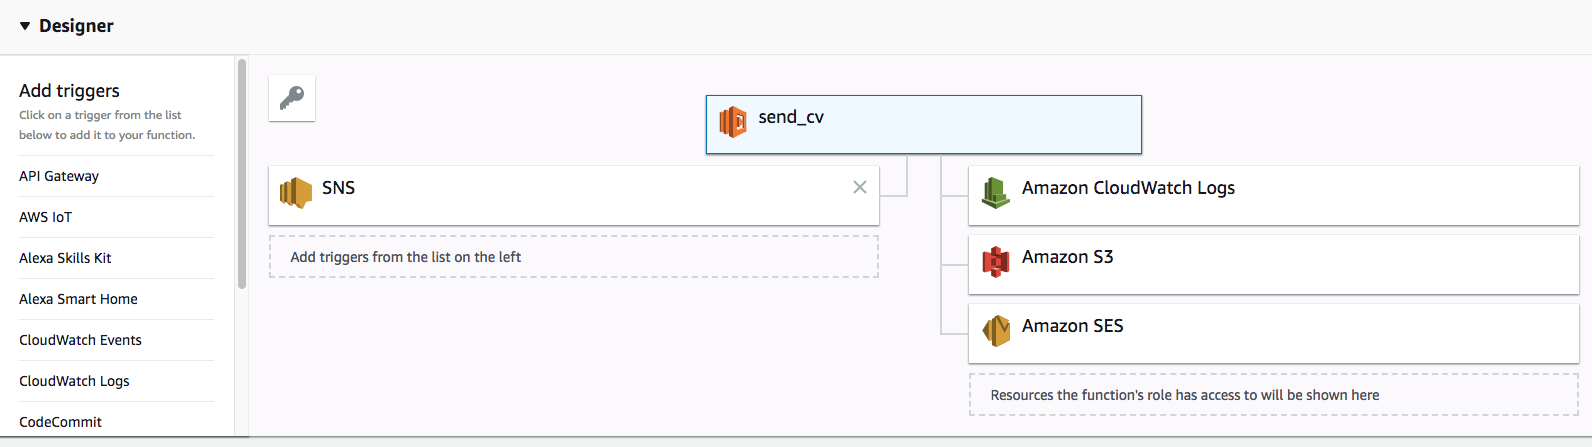 Automated Email Processing with AWS SES and Lambda